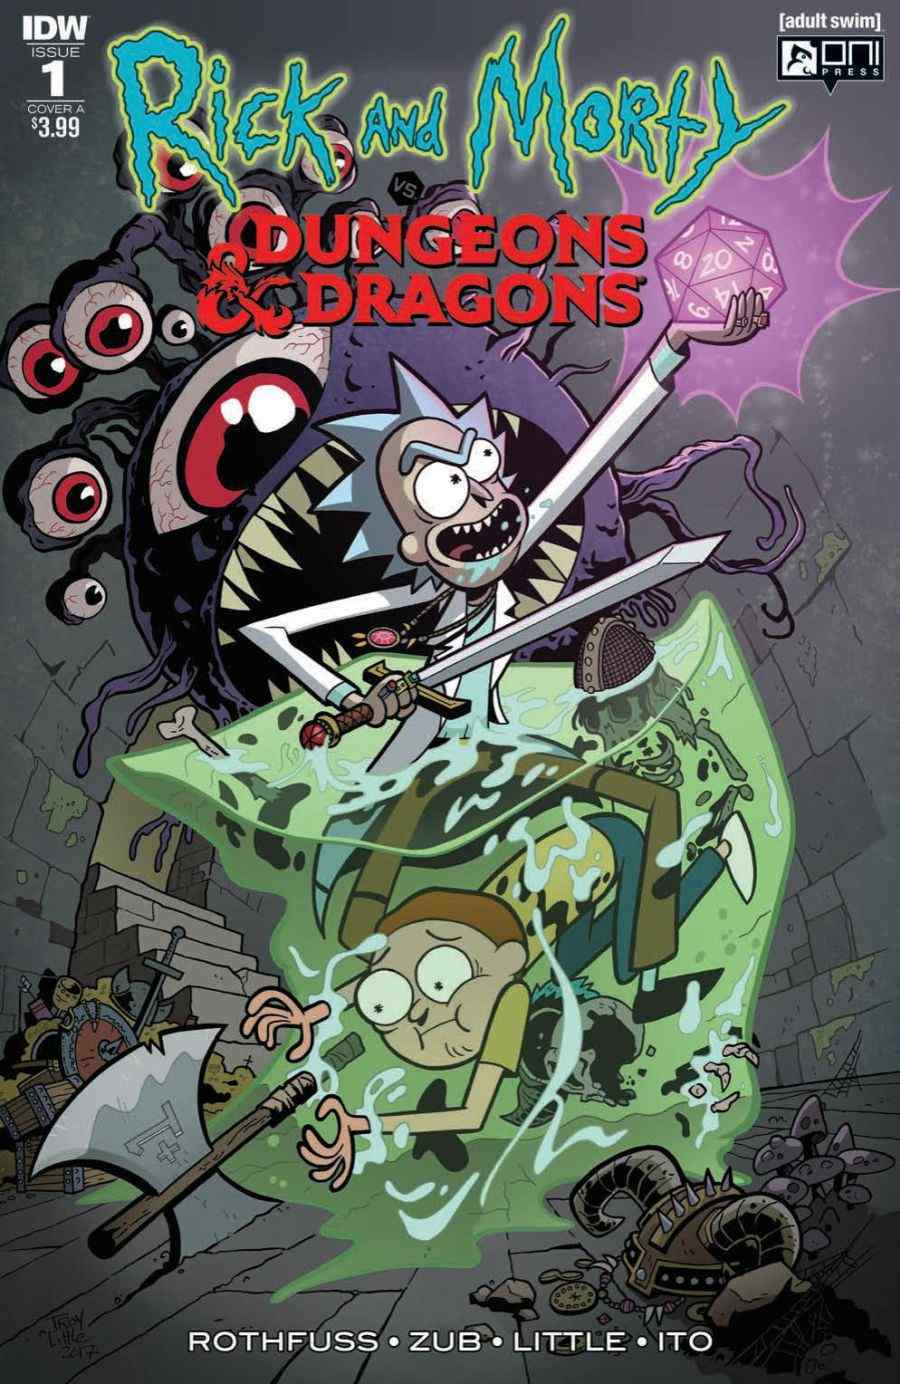 rick-and-morty-dungeons-dragons-01-pr-1-1130385.jpg